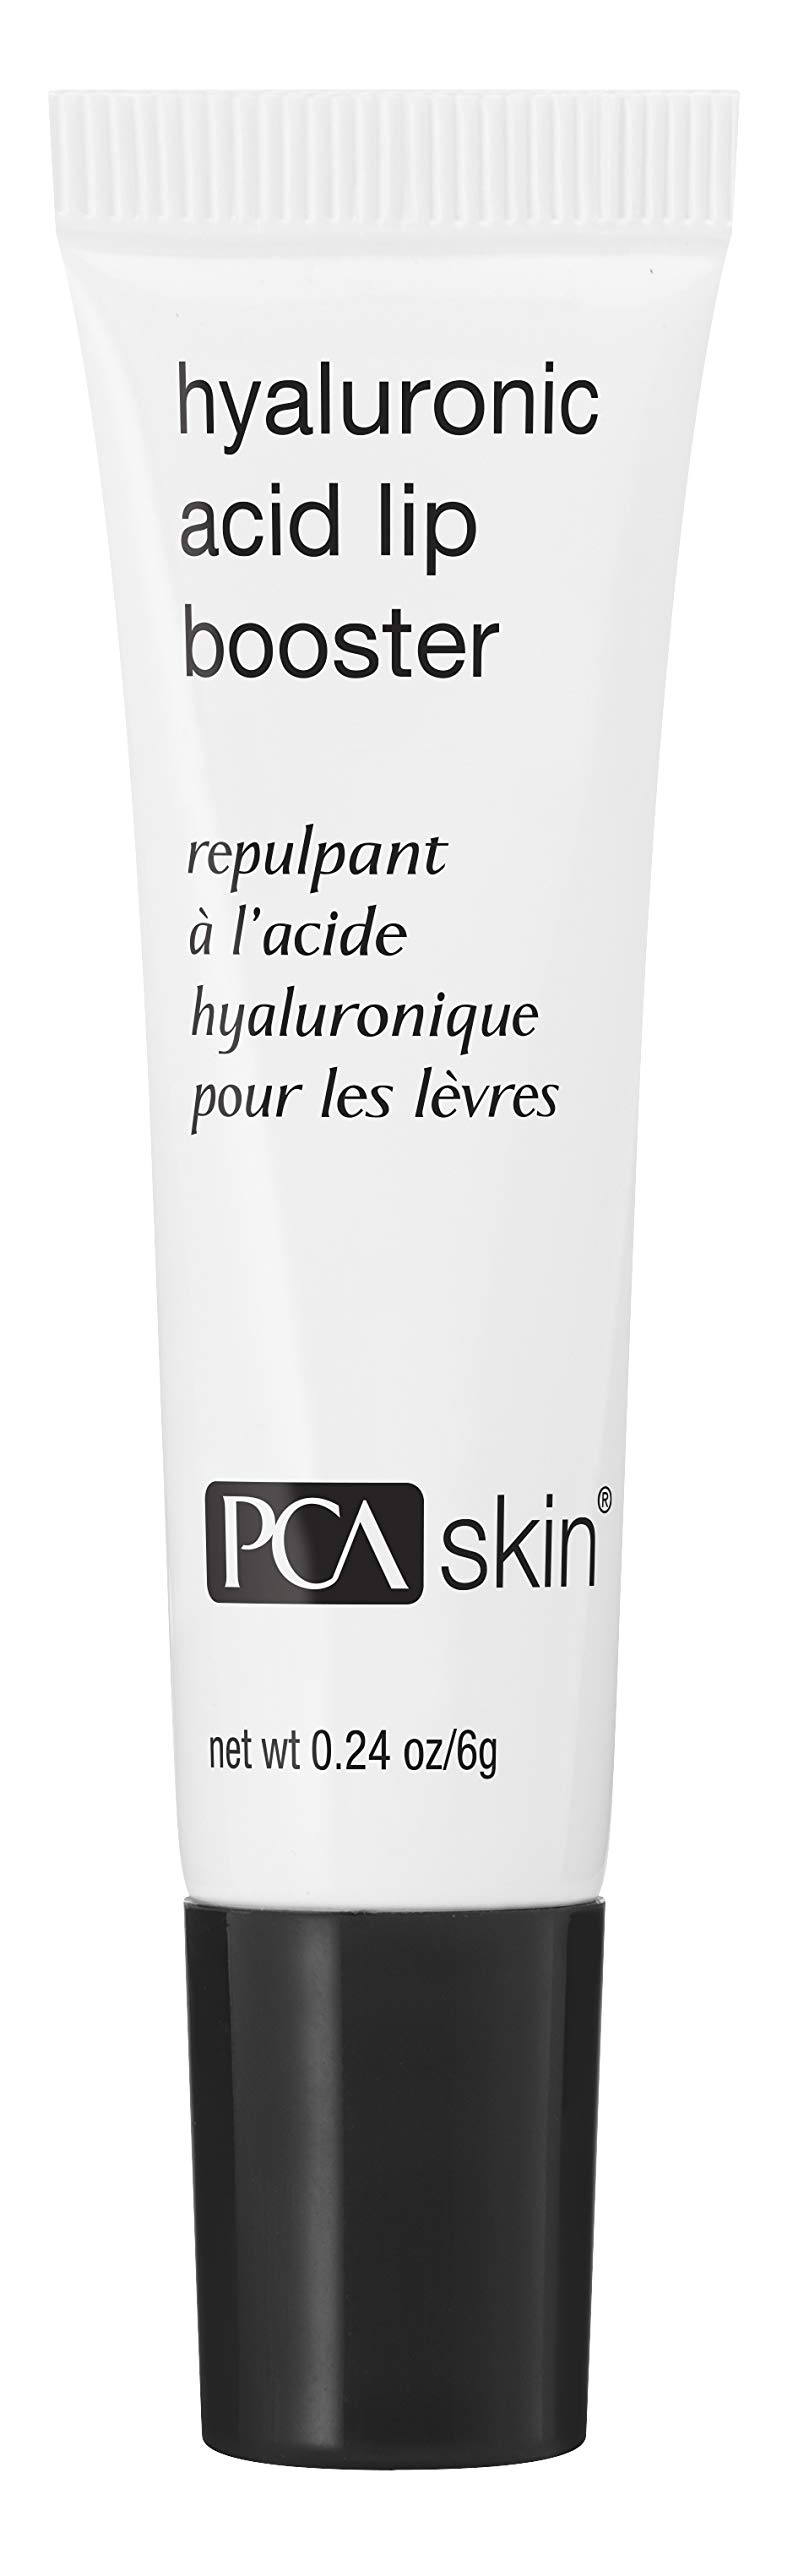 PCA SKIN Hyaluronic Acid Lip Booster, Hydrating Lip Treatment, 0.24 fluid ounce by PCA SKIN (Image #1)